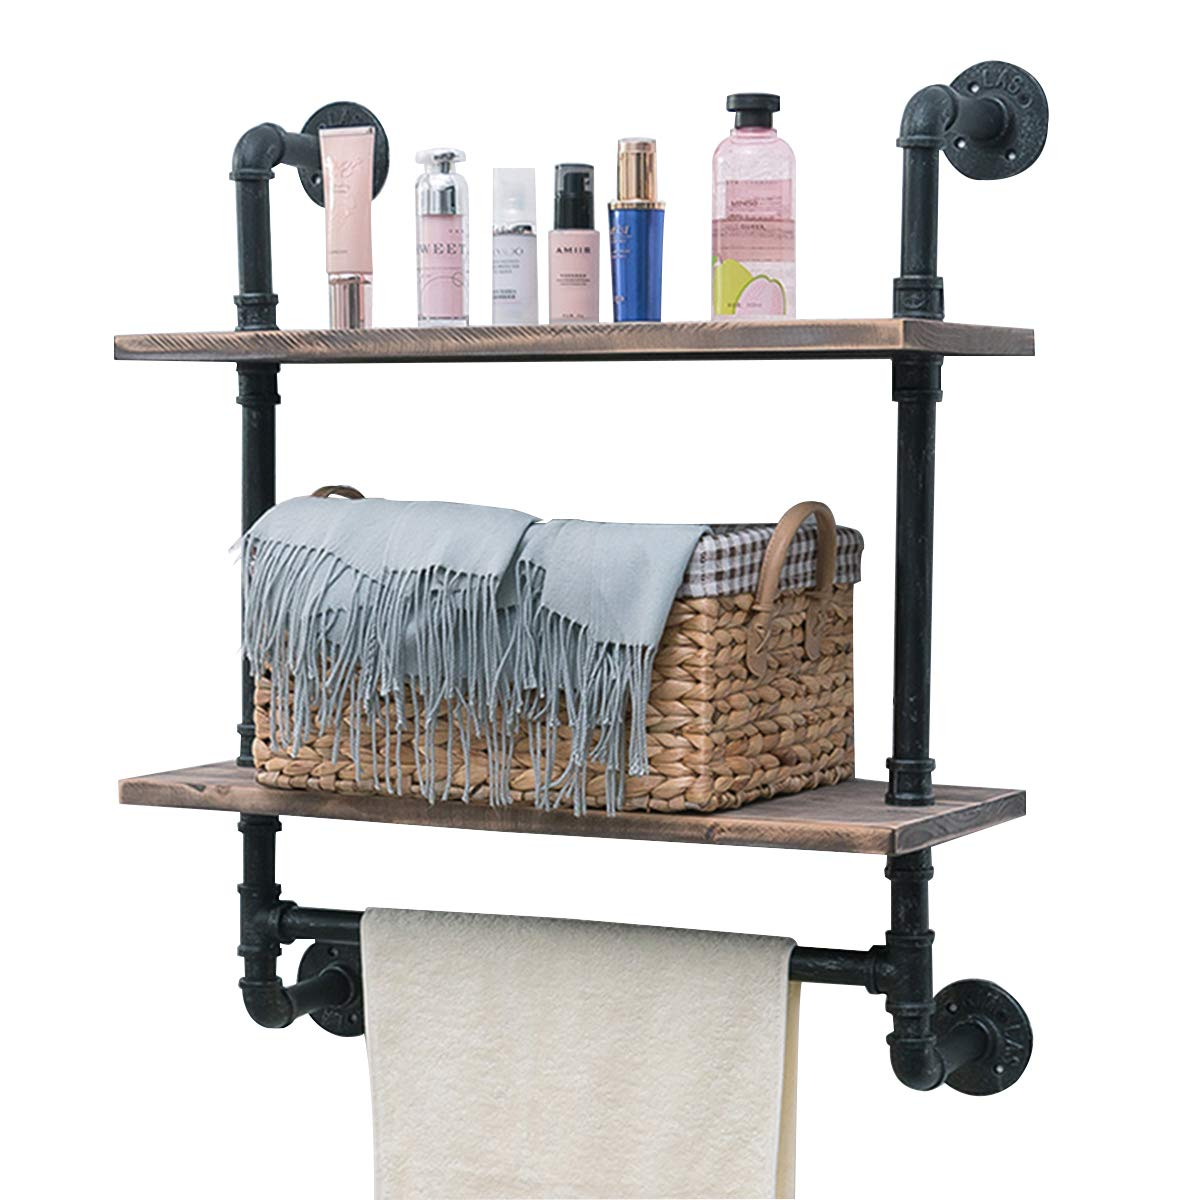 "Industrial Pipe Shelf,Rustic Wall Shelf with Towel Bar,24"" Towel Racks for Bathroom,2 Tiered Pipe Shelves Wood Shelf Shelving"